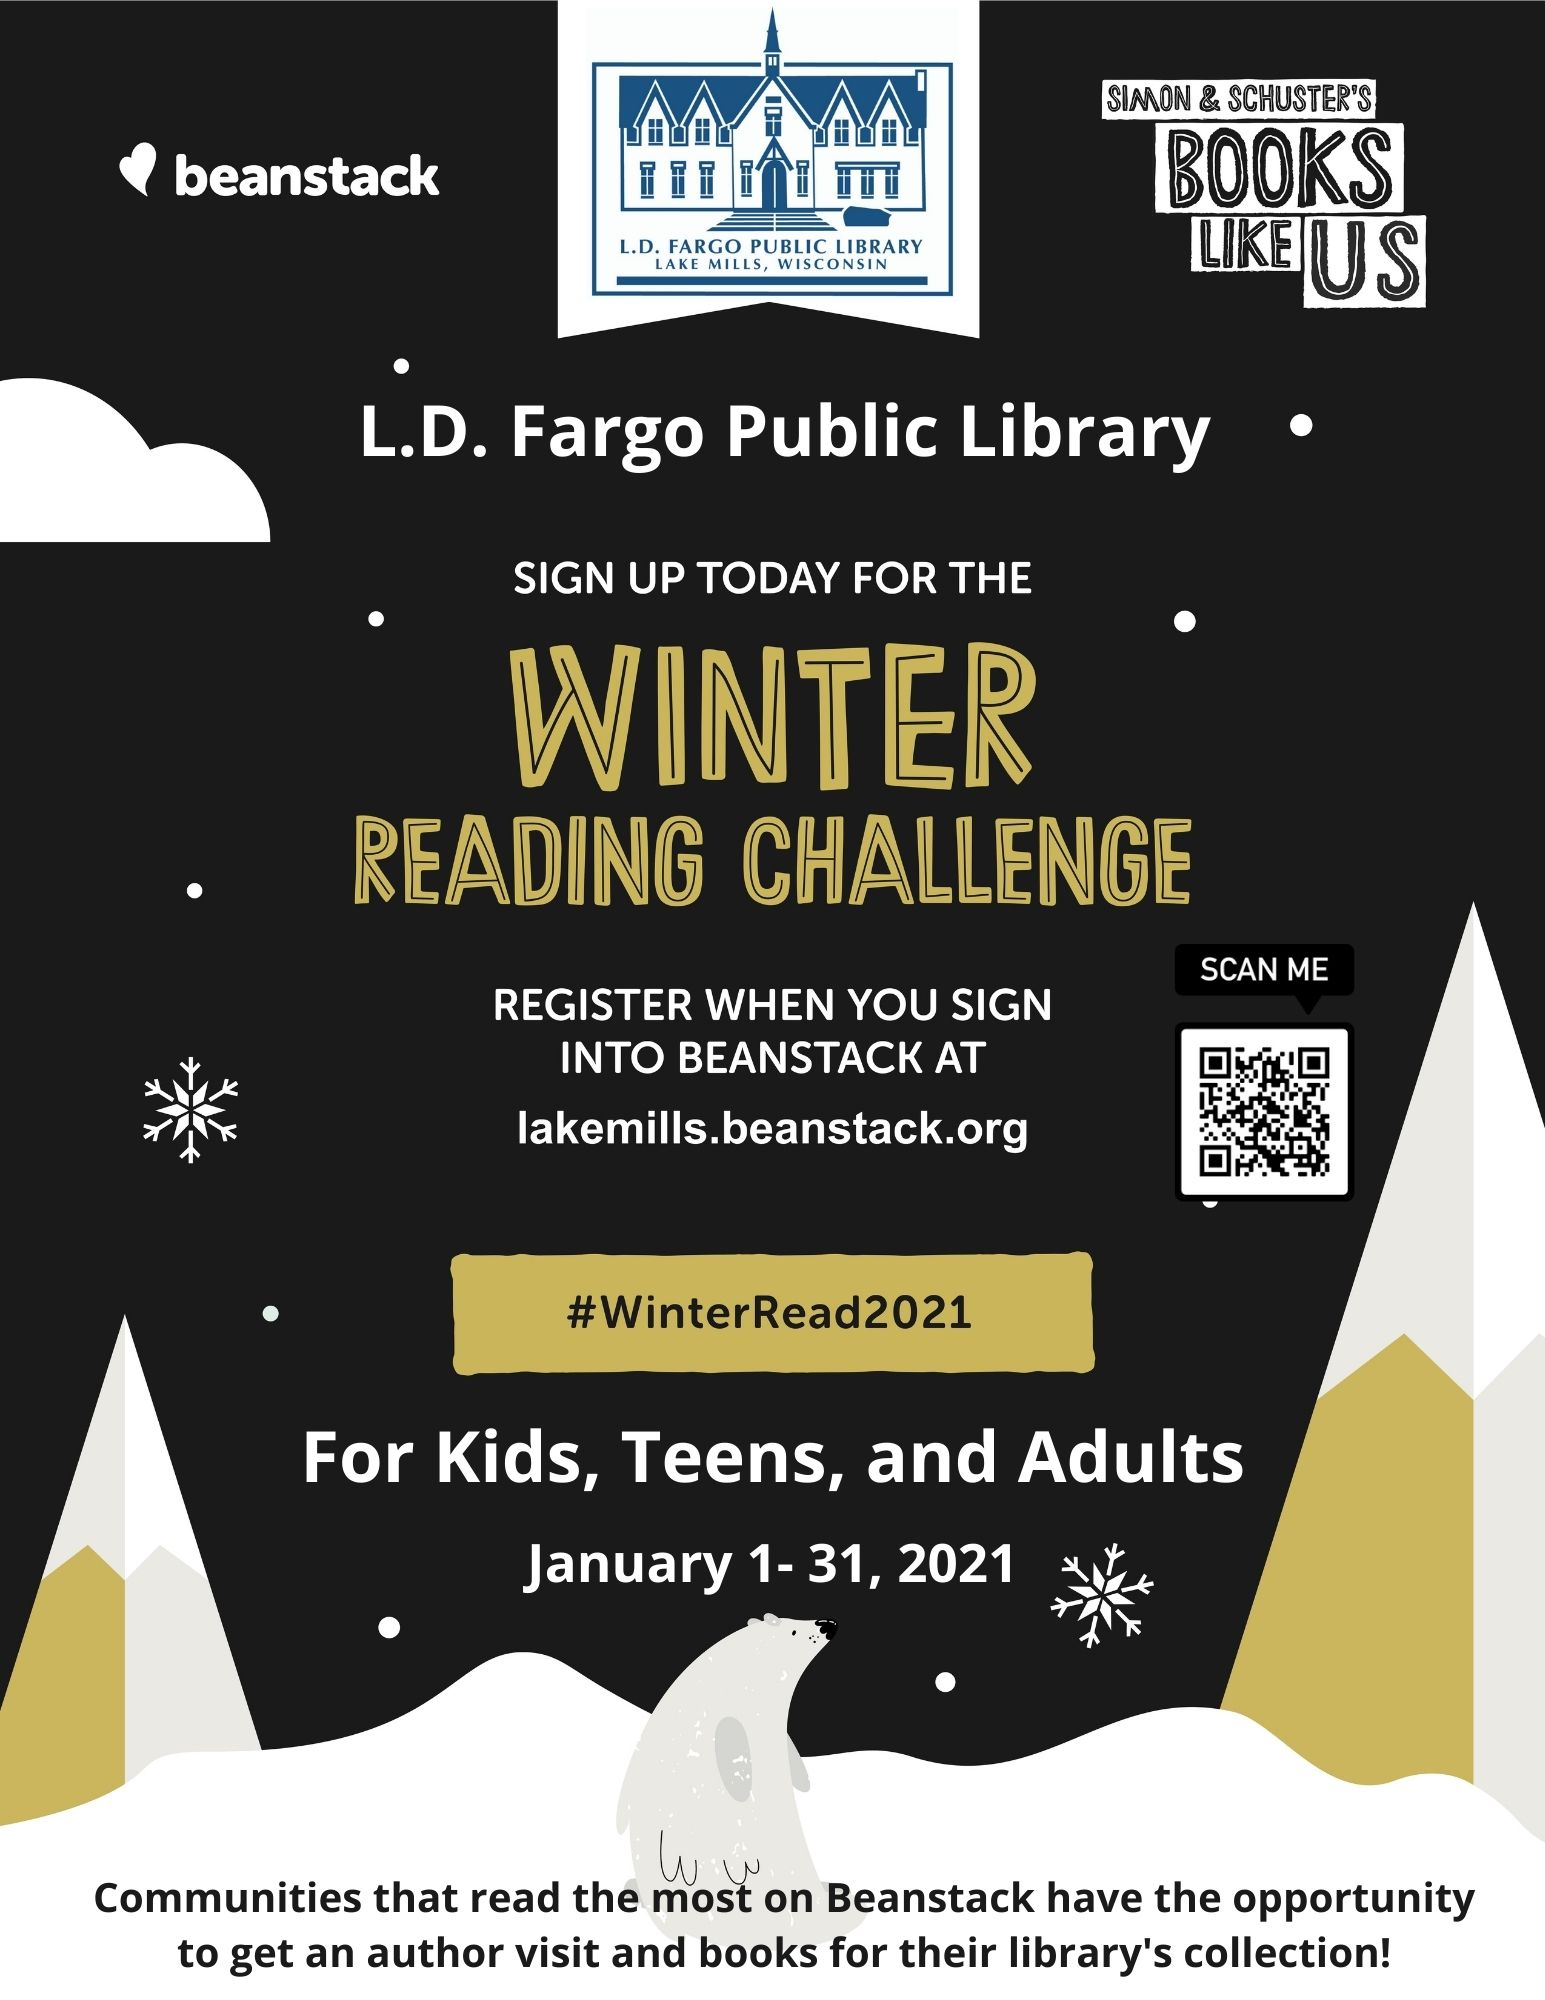 Sign up today for #WinterRead2021. For Children, Teens, and Adults. SIgn up on Beanstack!  January 1-31, 2021. Communities that read the most on Beanstack have the opportunity to get an author visit and books for their library's collection!